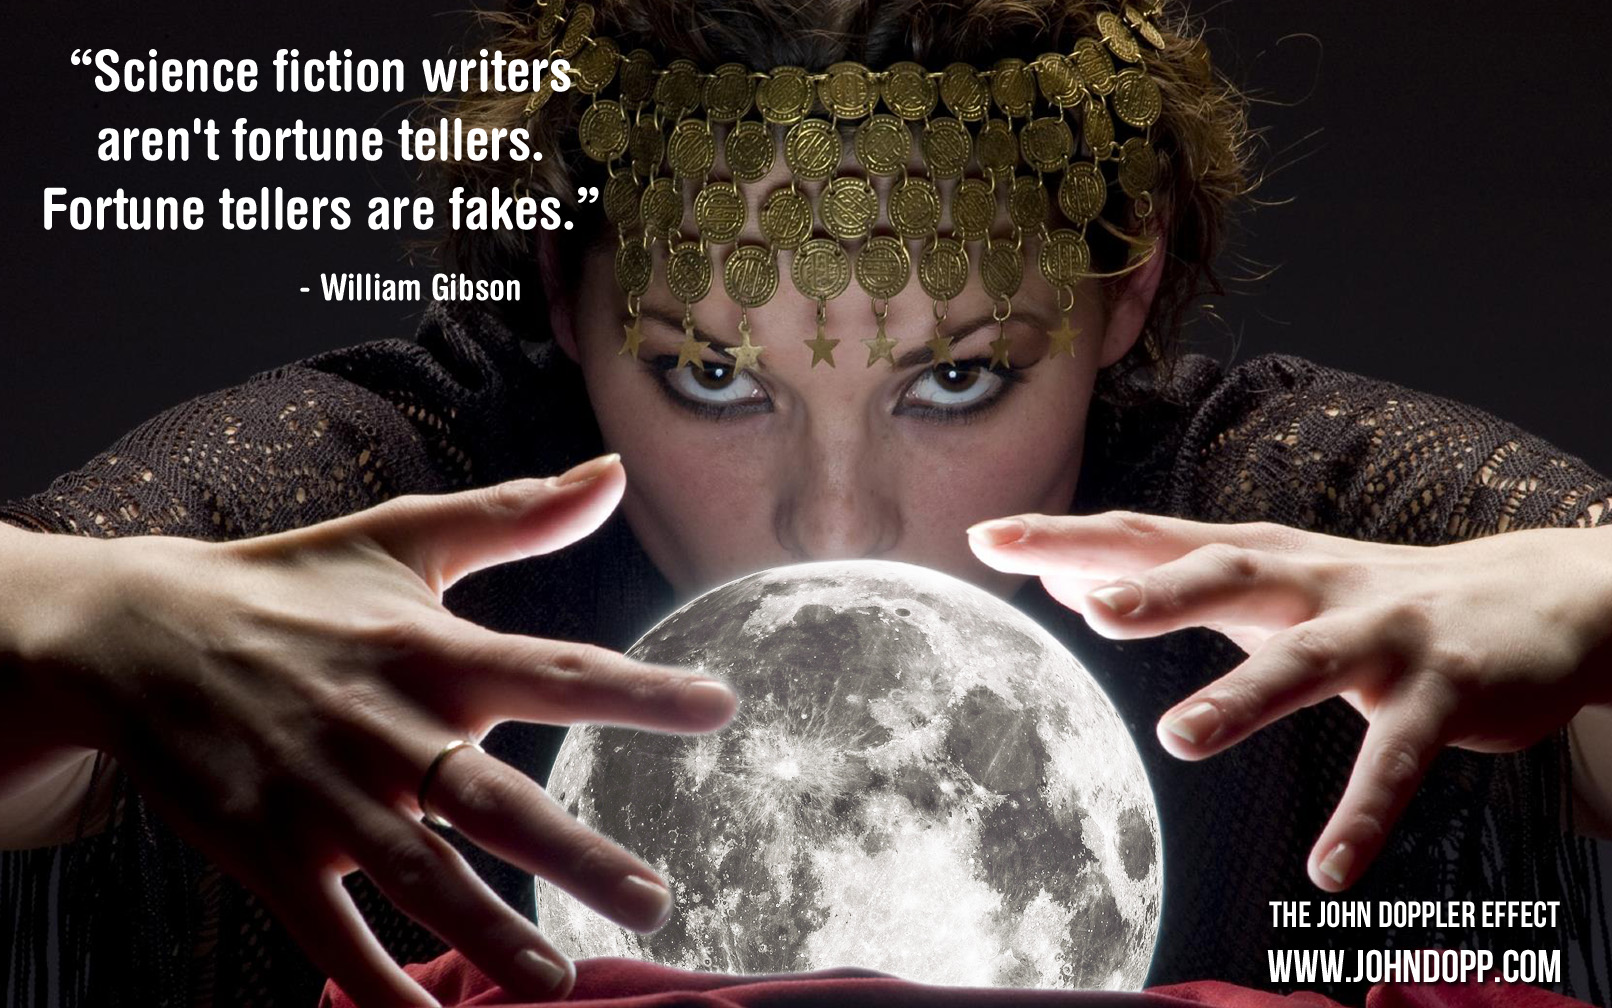 Writer's Effect, how and why?